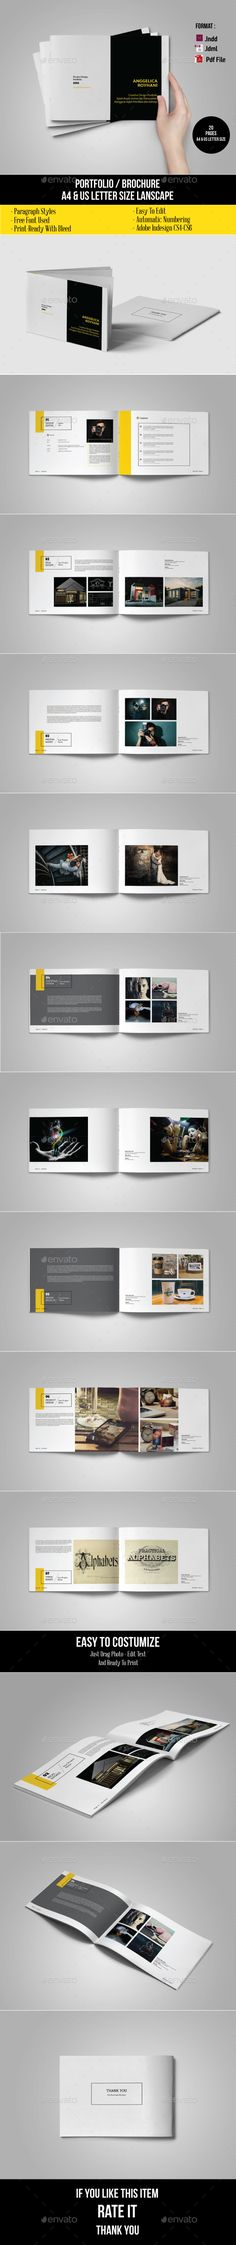 Company Brochure Indesign Word Template Indesign Templates - Indesign template brochure